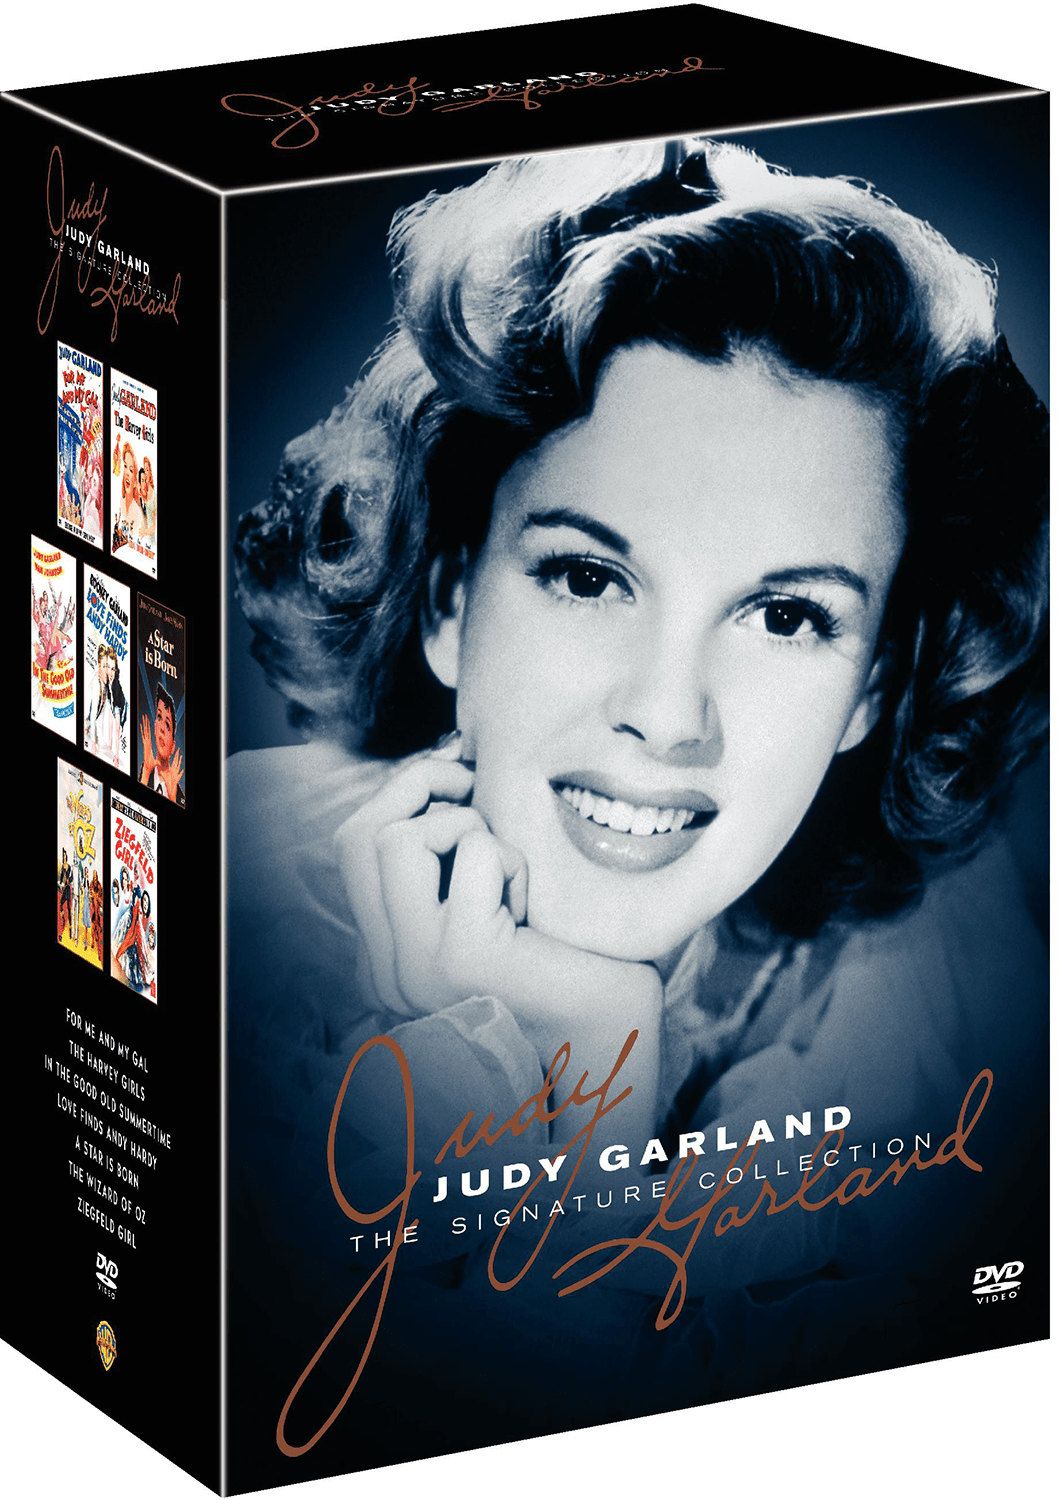 The Judy Garland Signature Collection DVD boxed set